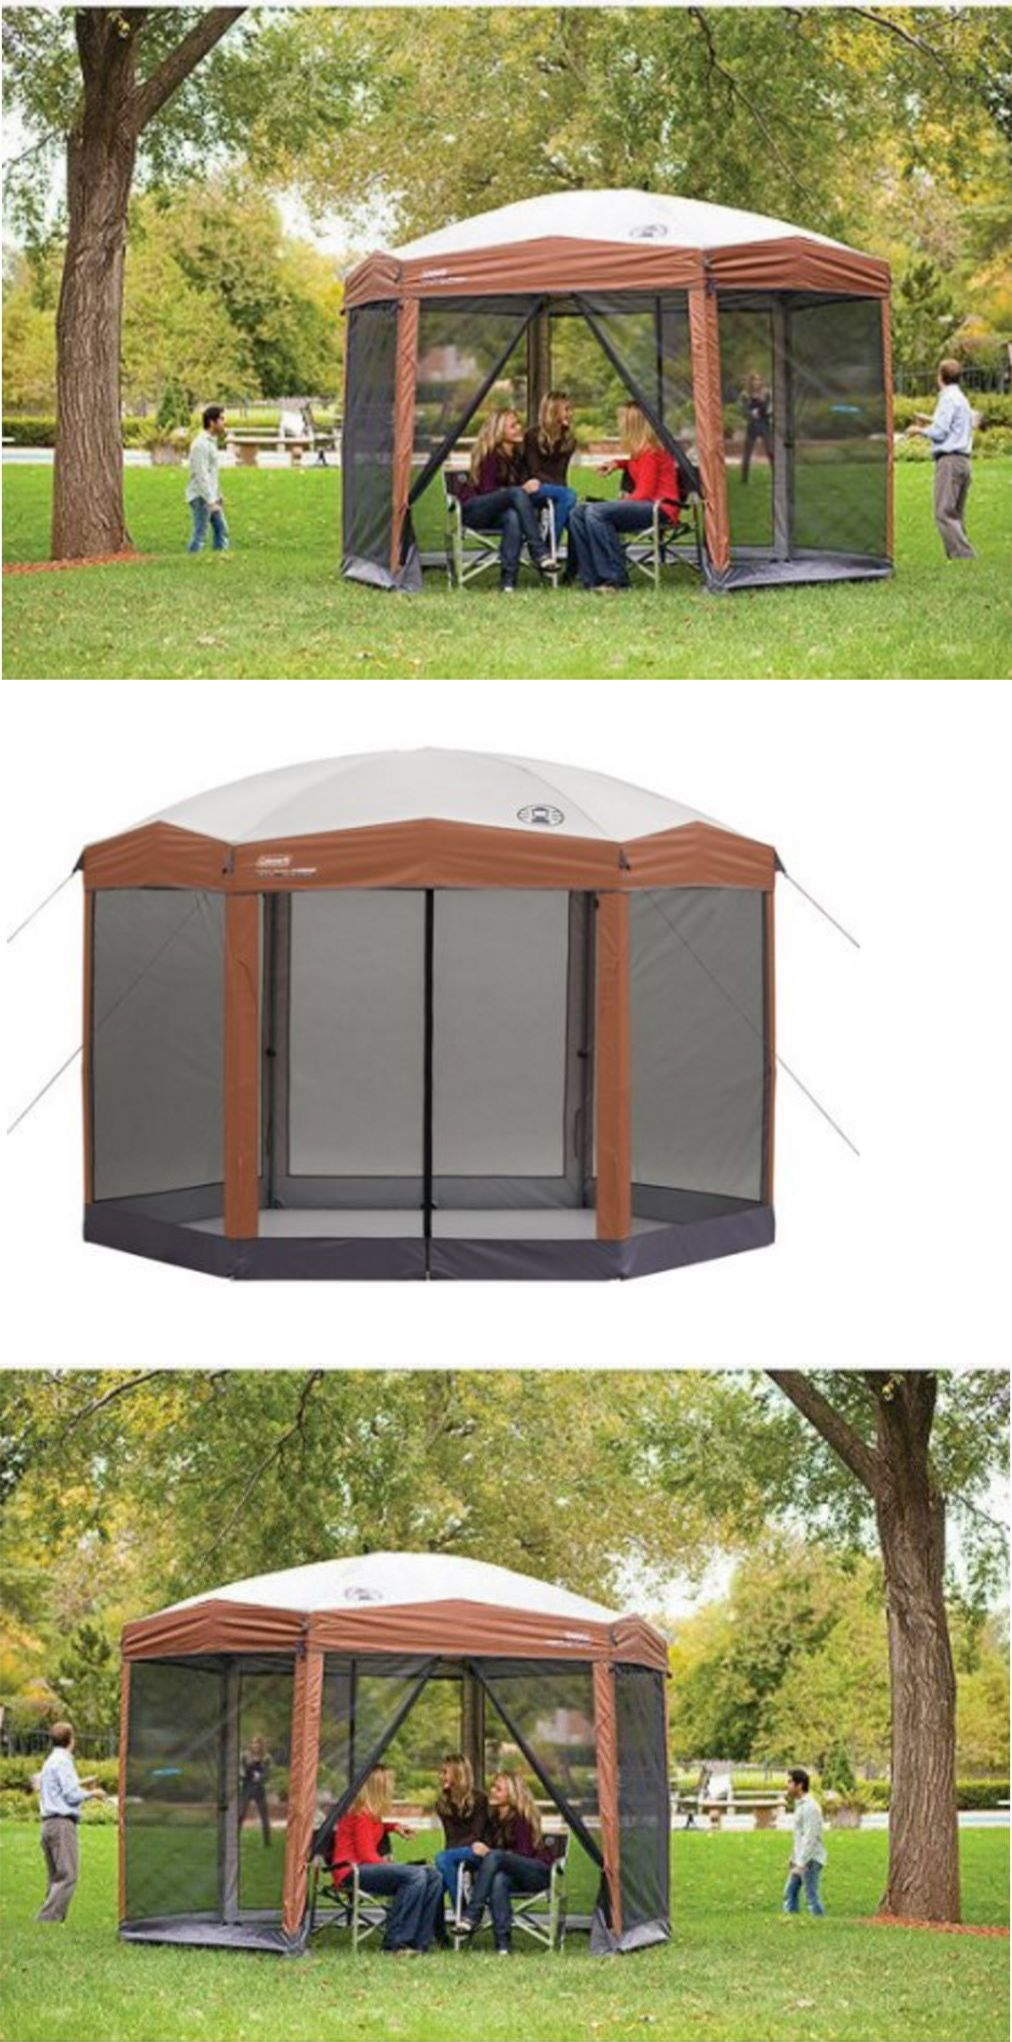 Canopies And Shelters 179011: Screened In Gazebo Canopy House Outdoor  Camping Dining Shelter Tent Coleman